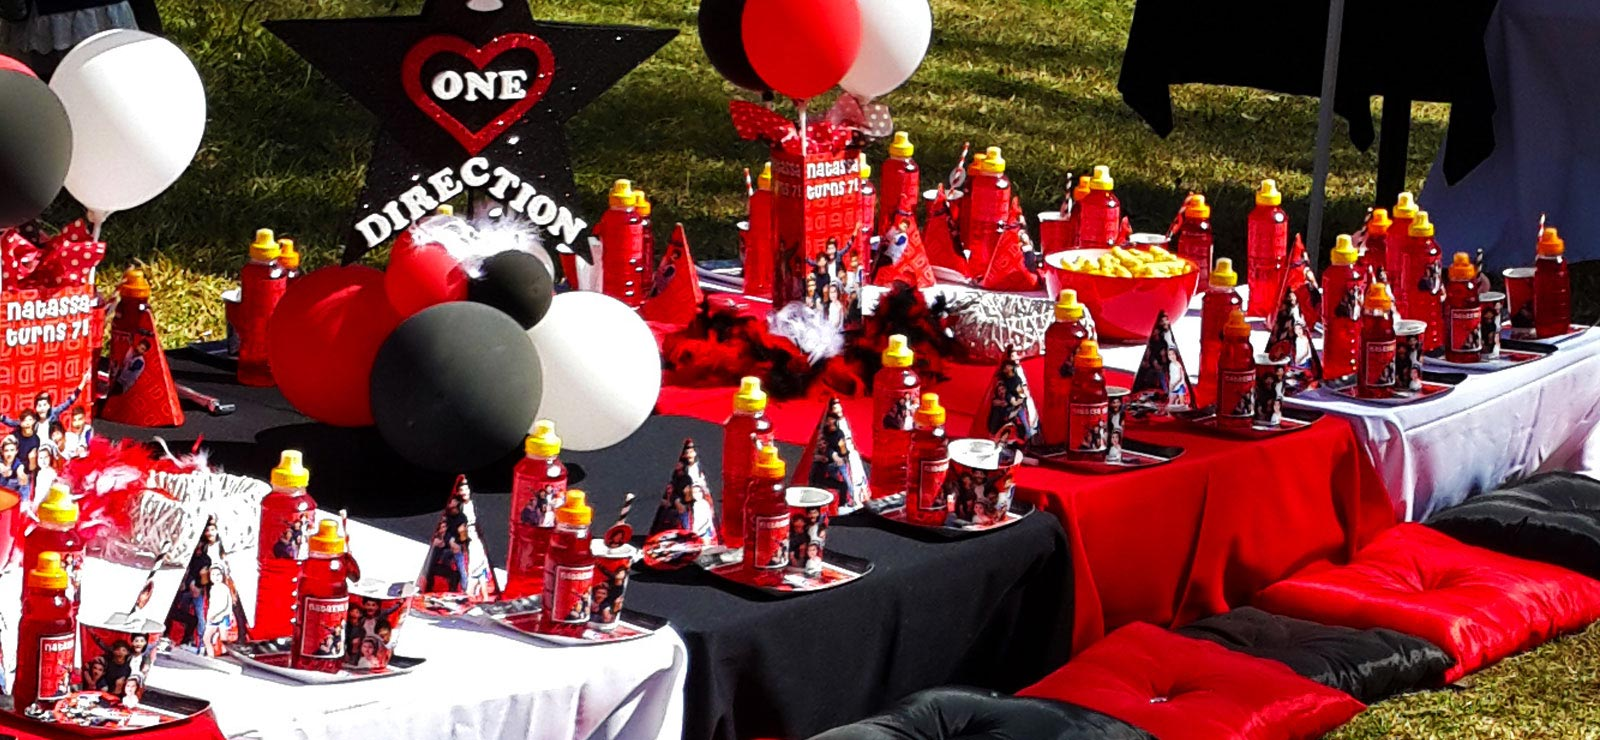 Kiddies Theme Parties | Party Decor | Party Supplies ...